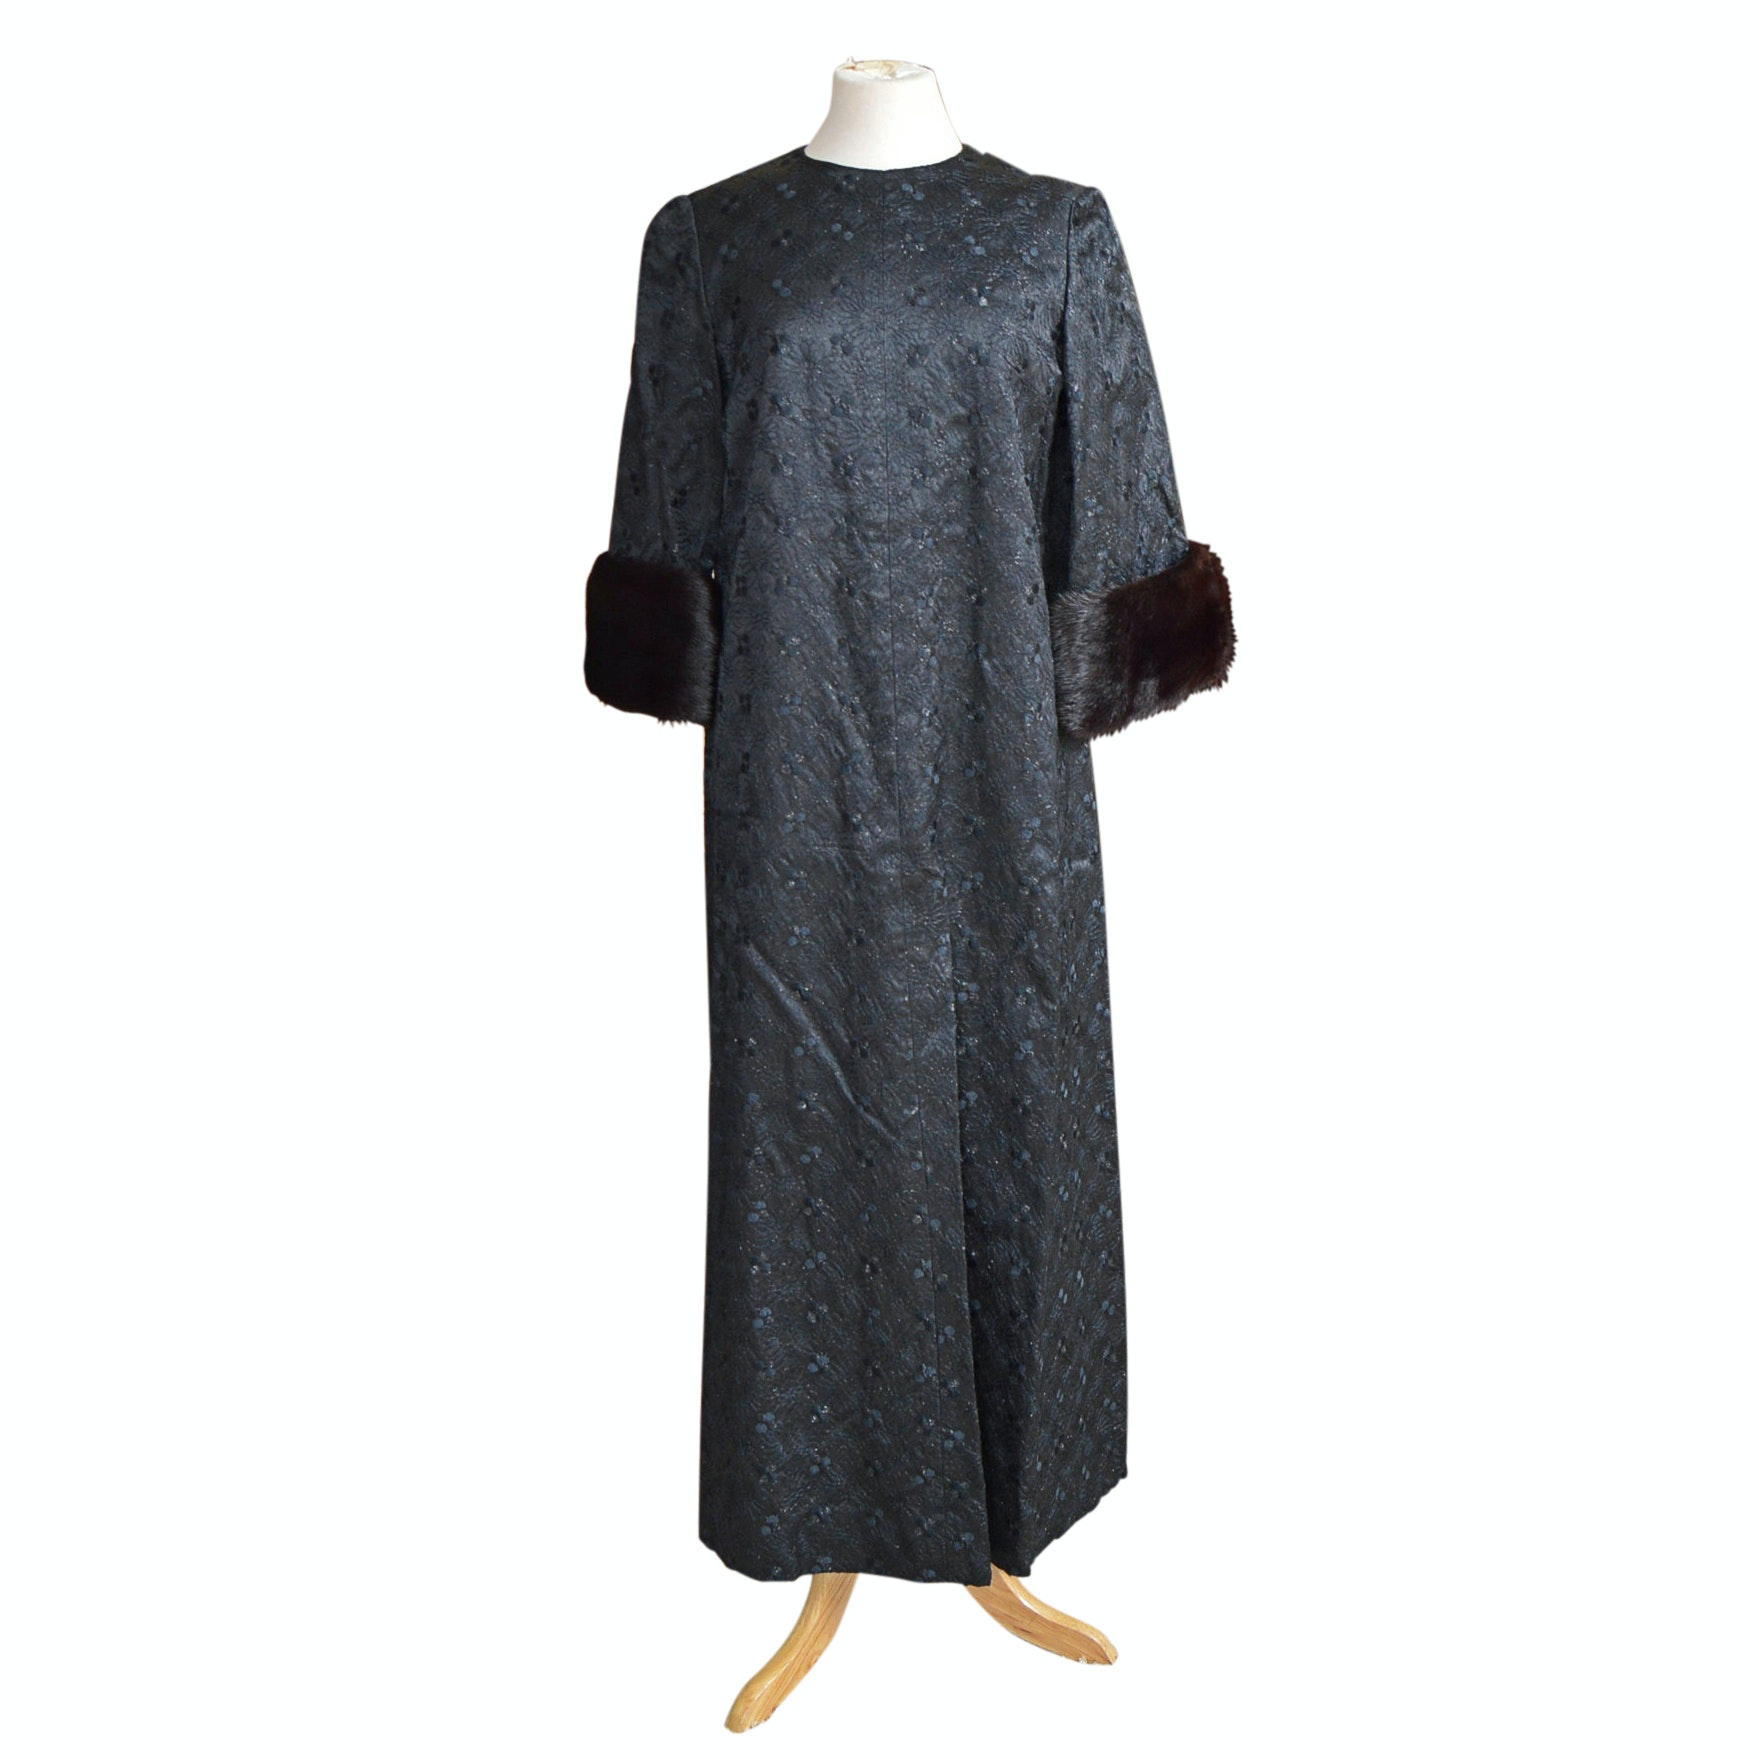 Vintage Midnight Blue Brocade Caftan with Dark Brown Mink Cuffs